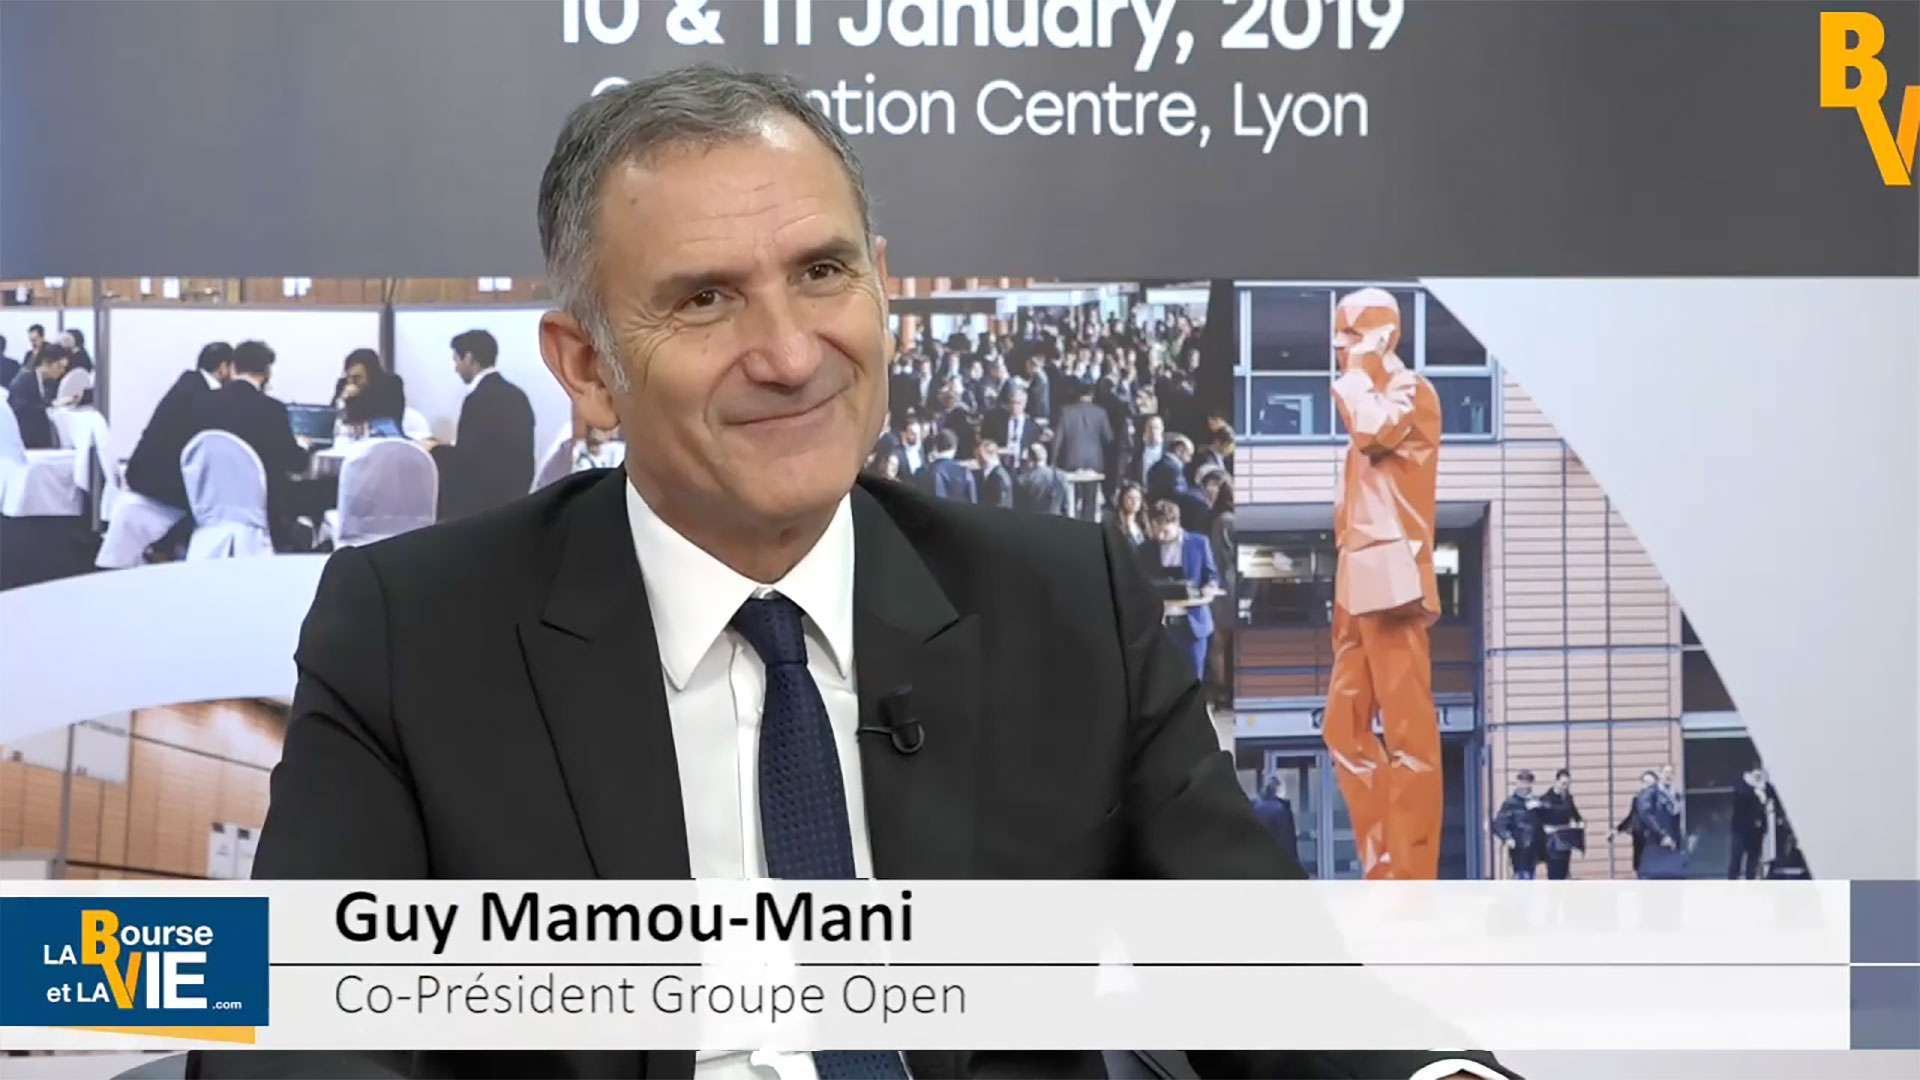 Guy Mamou-Mani : interviewé par la Bourse et la Vie TV